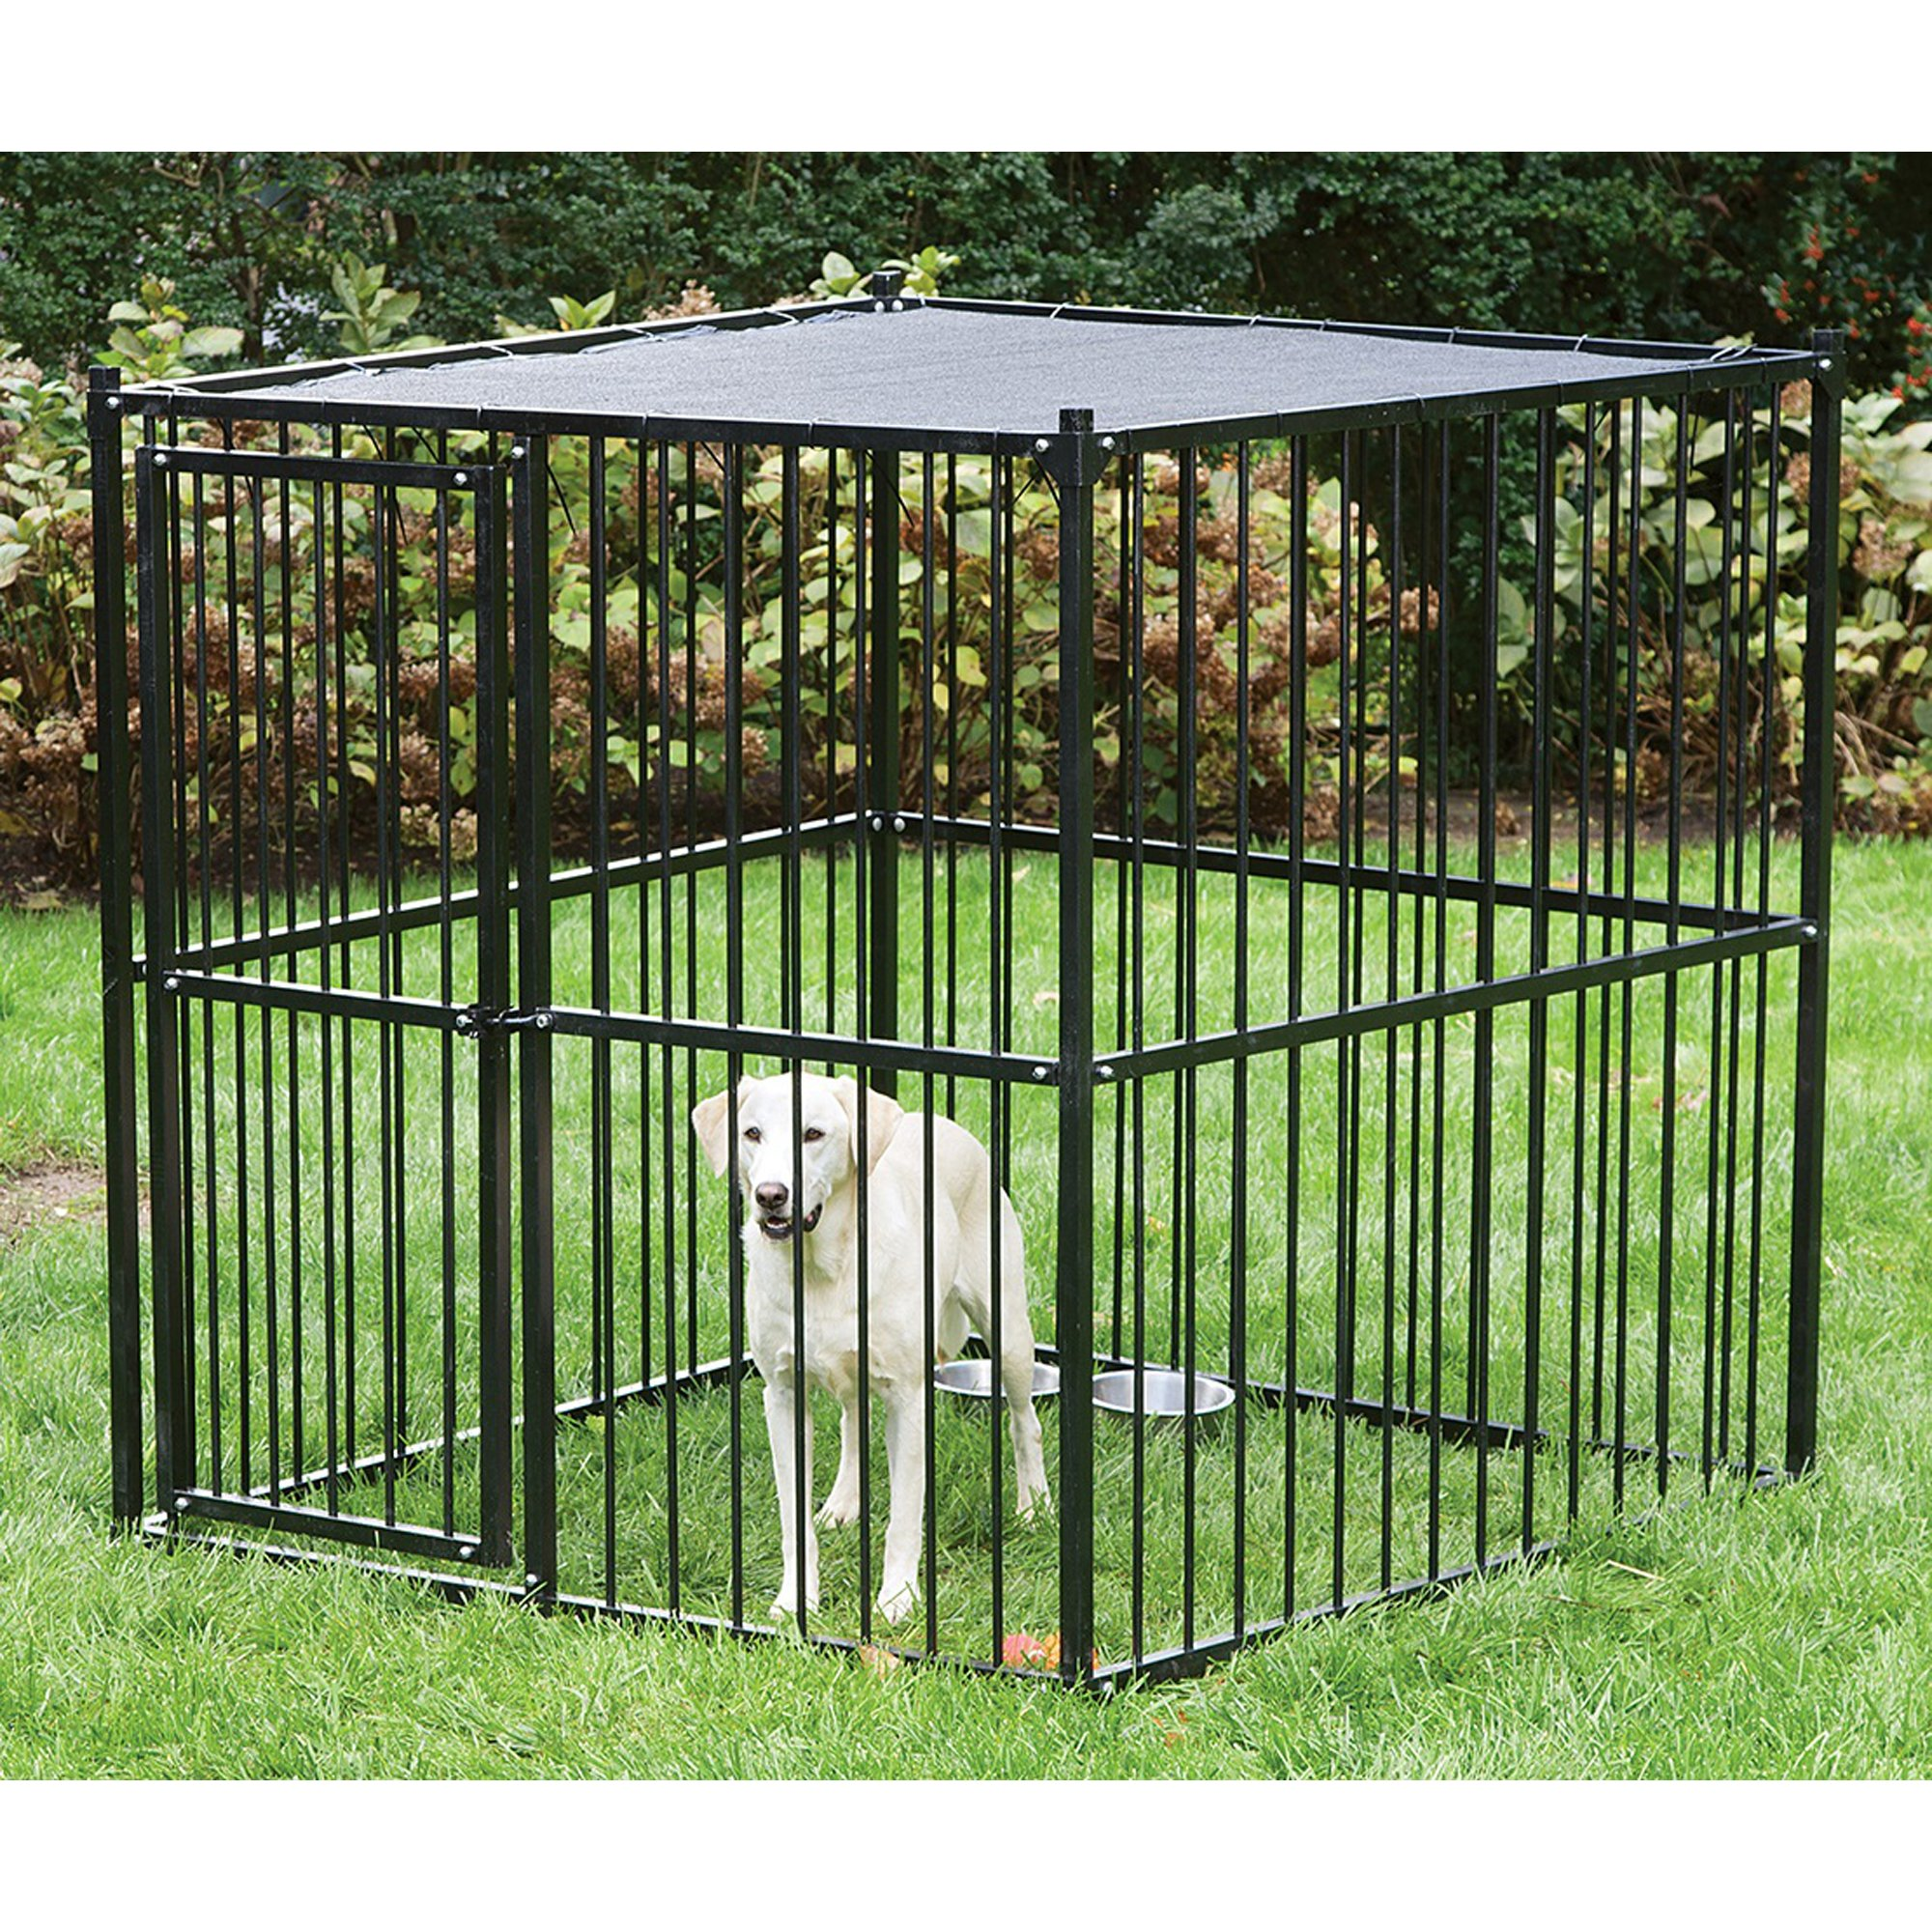 Fencemaster Laurelview Dog Kennel: FenceMaster Laurelview Dog Kennel